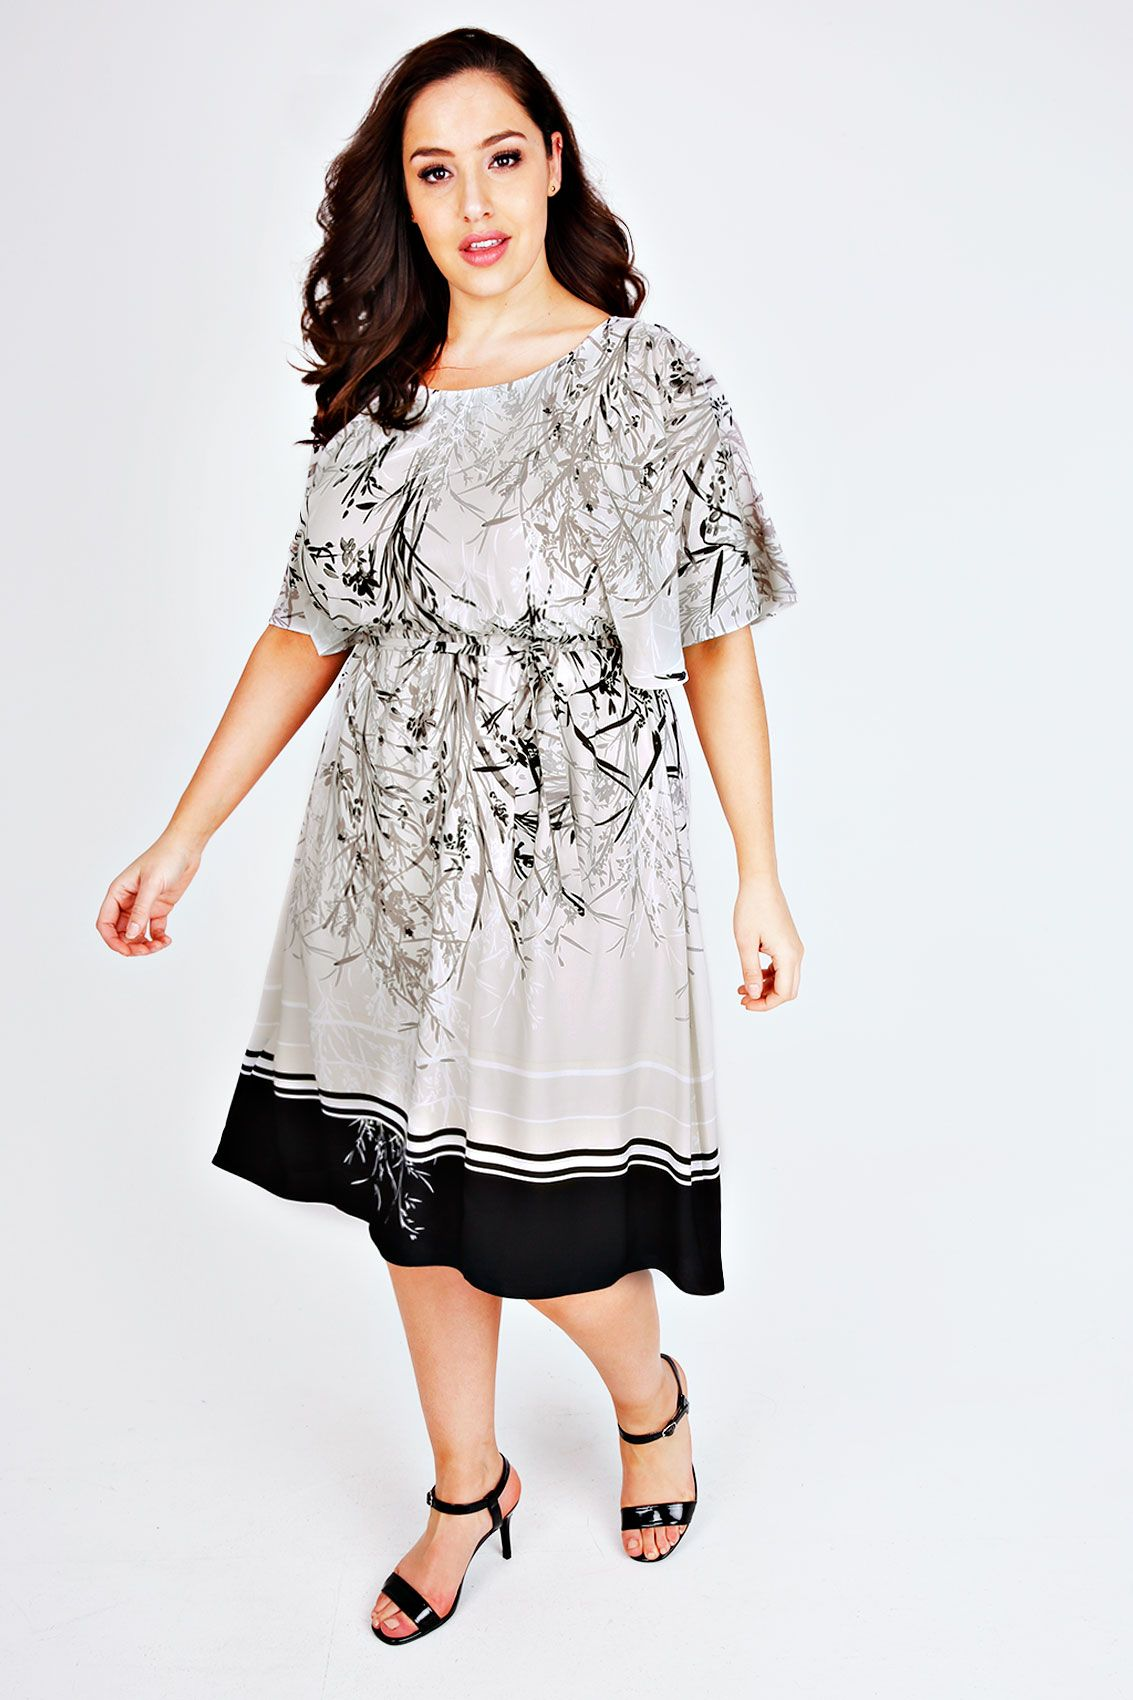 SCARLETT & JO White & Grey Floral Border Print Kimono Dress